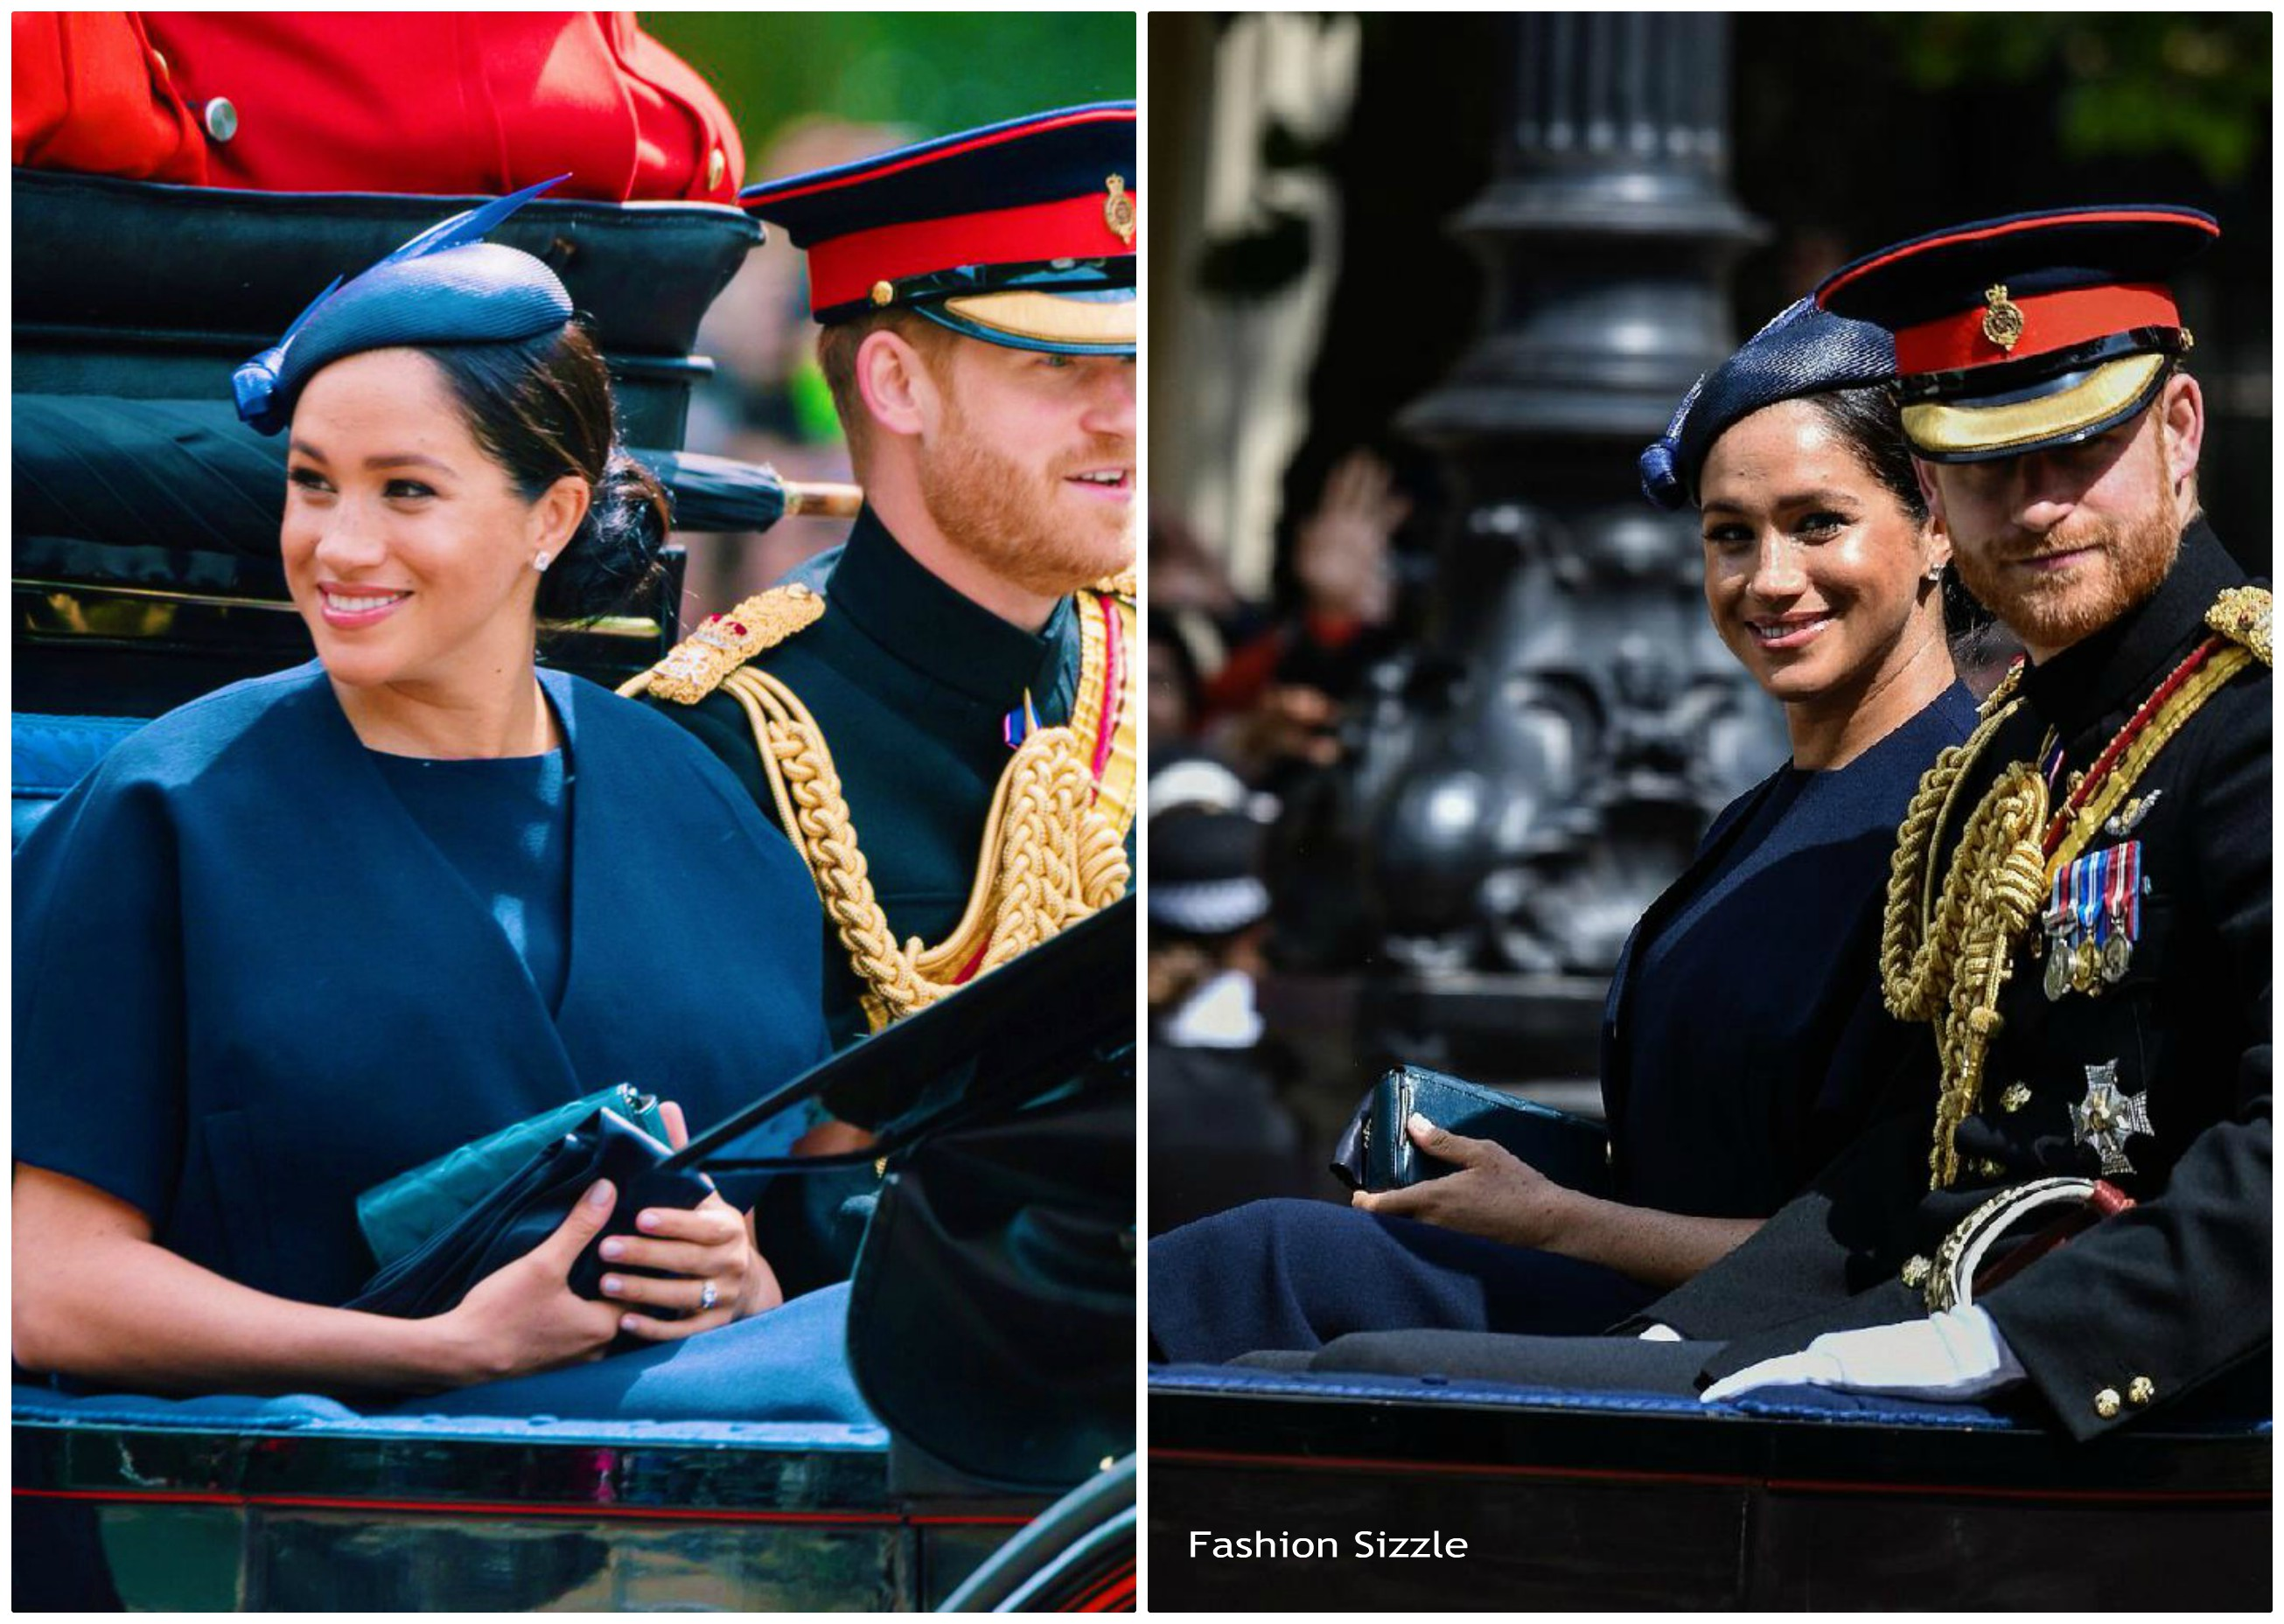 meghan-duchess-of-sussex-in-givenchy-trooping-the-colour